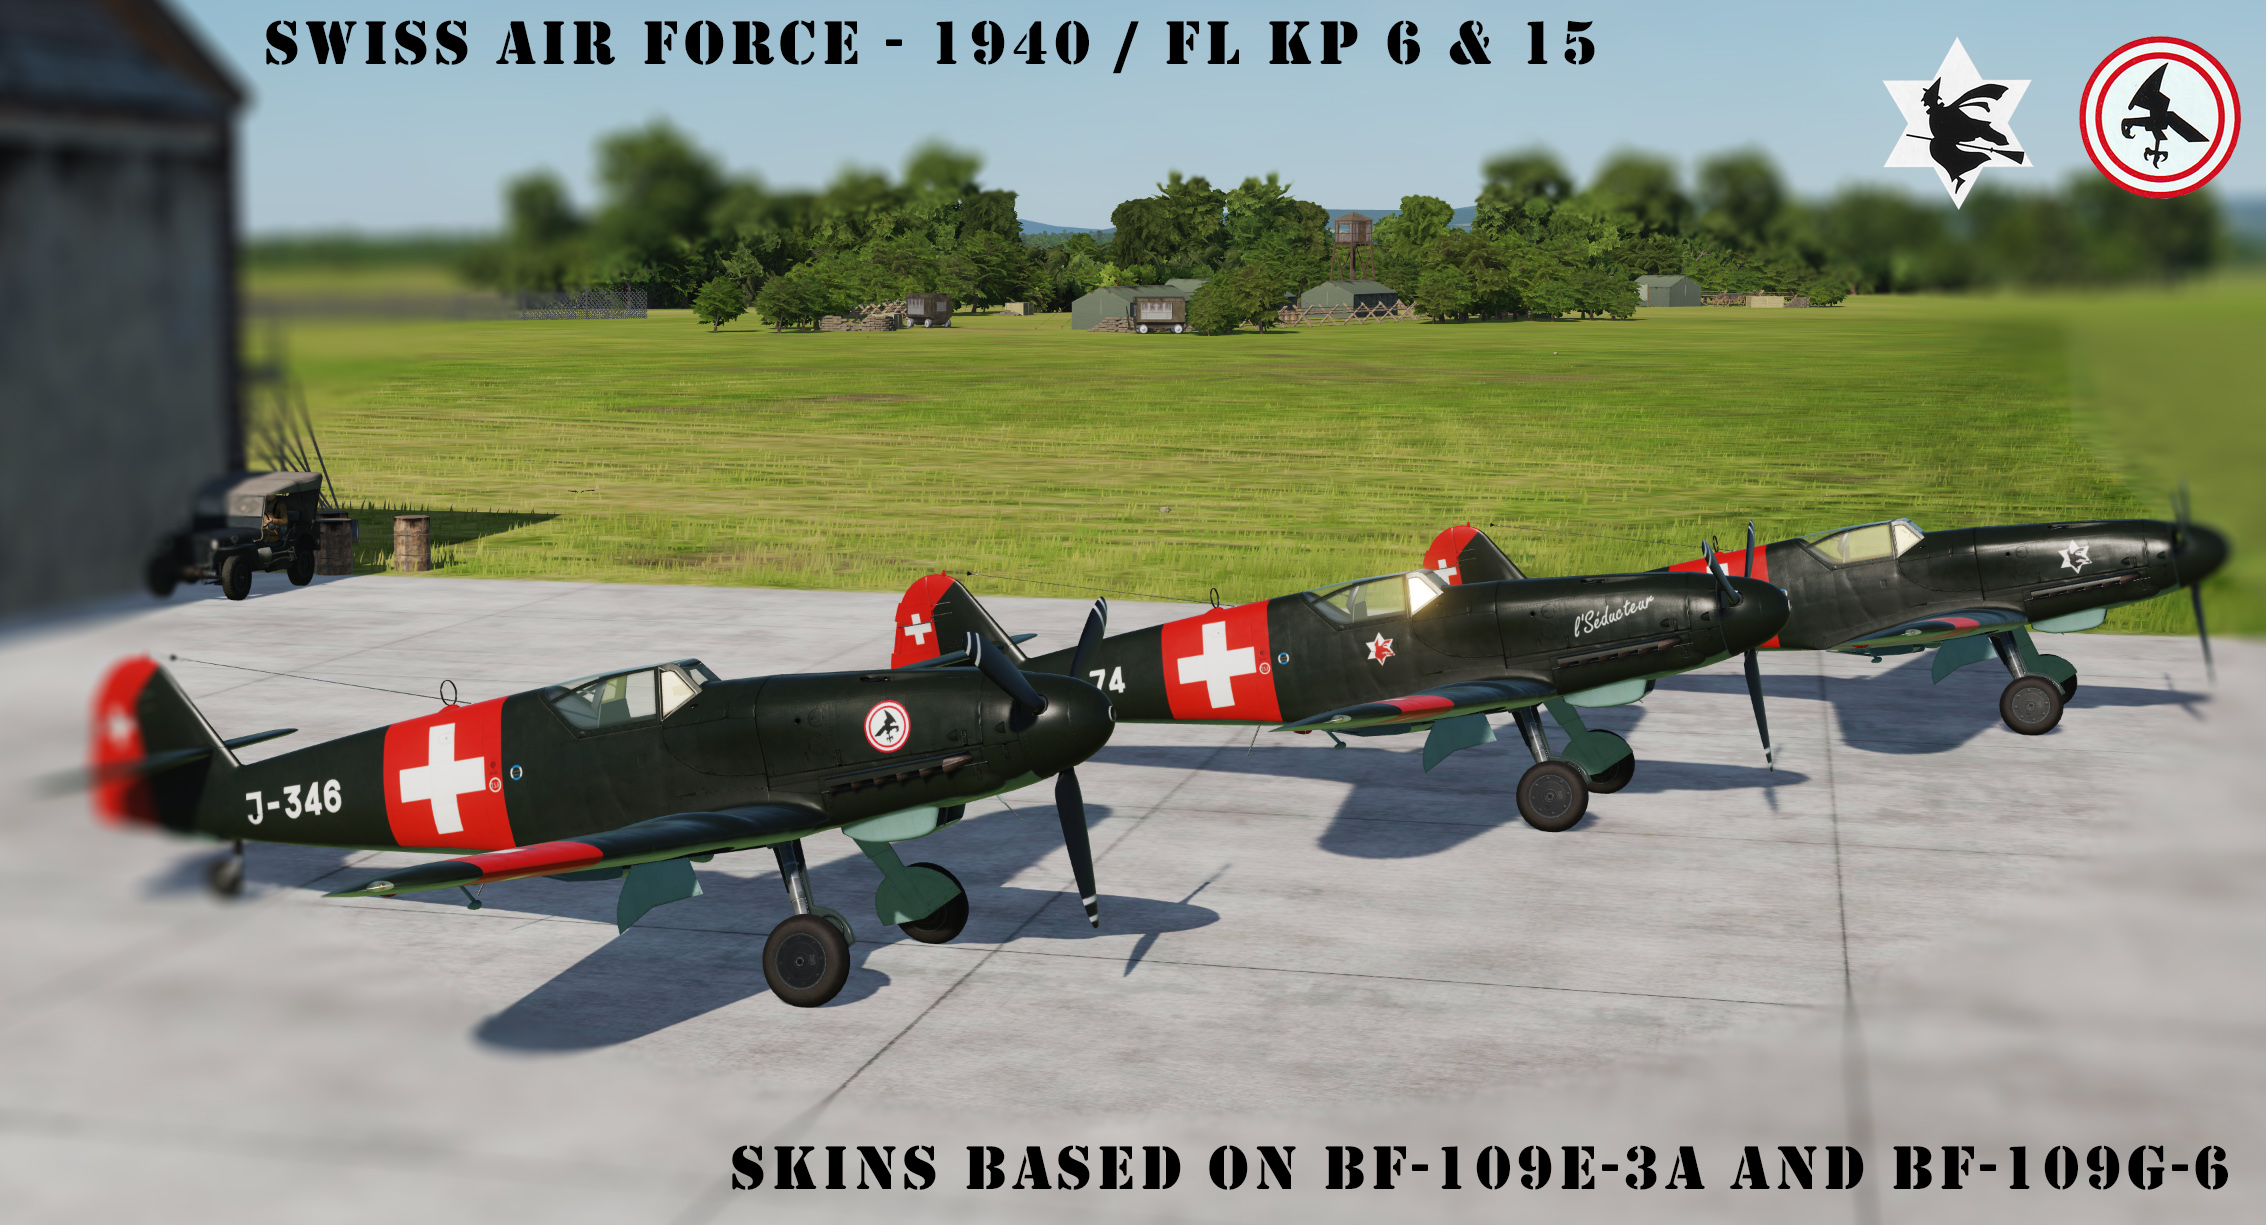 [Bf-109K-4] Swiss Air Force 1940 - Fl Kp 6 & 15